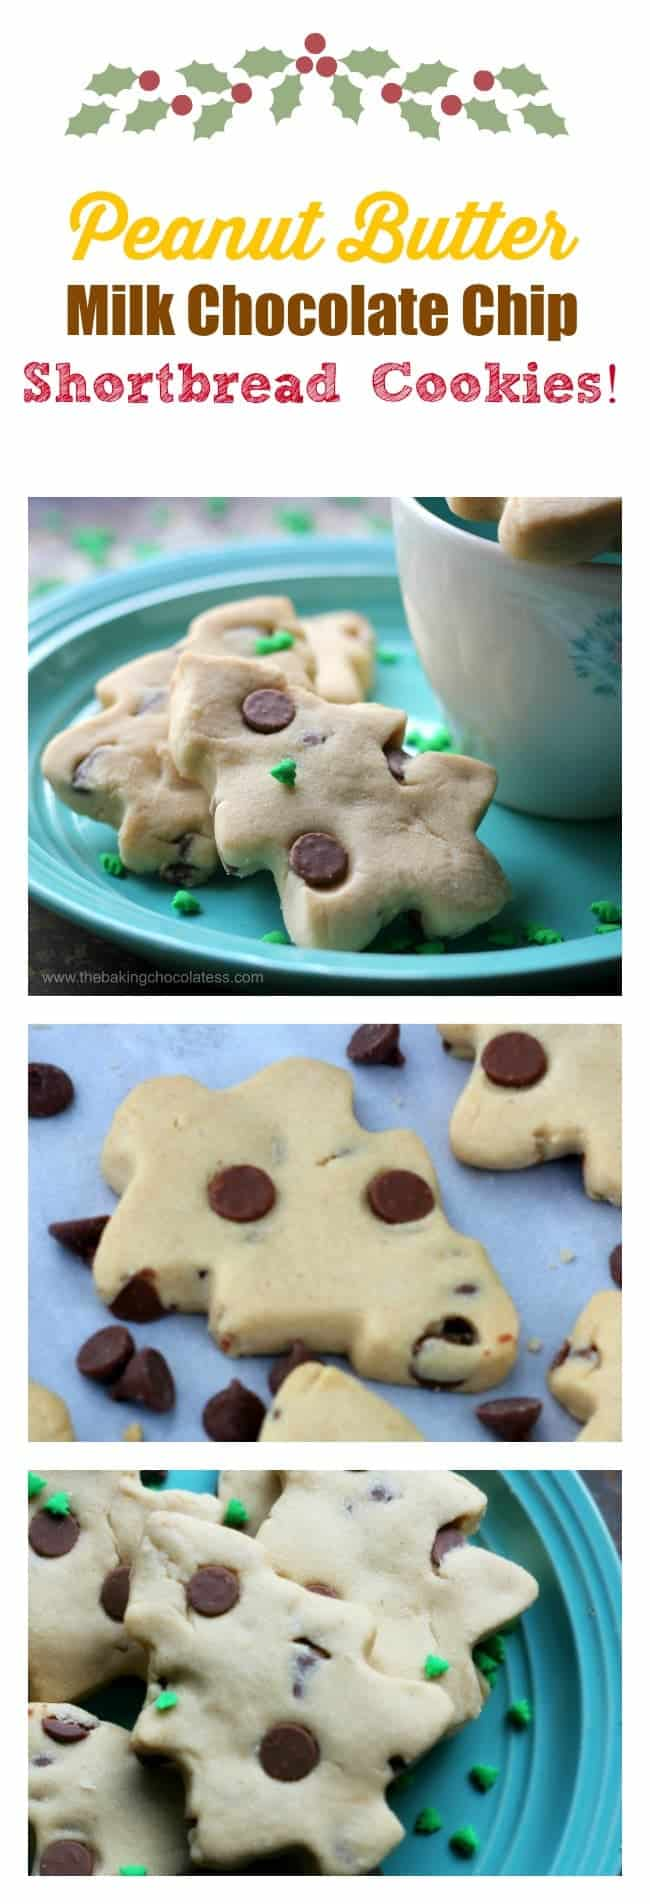 Peanut Butter Milk Chocolate Chip Shortbread Cookies!